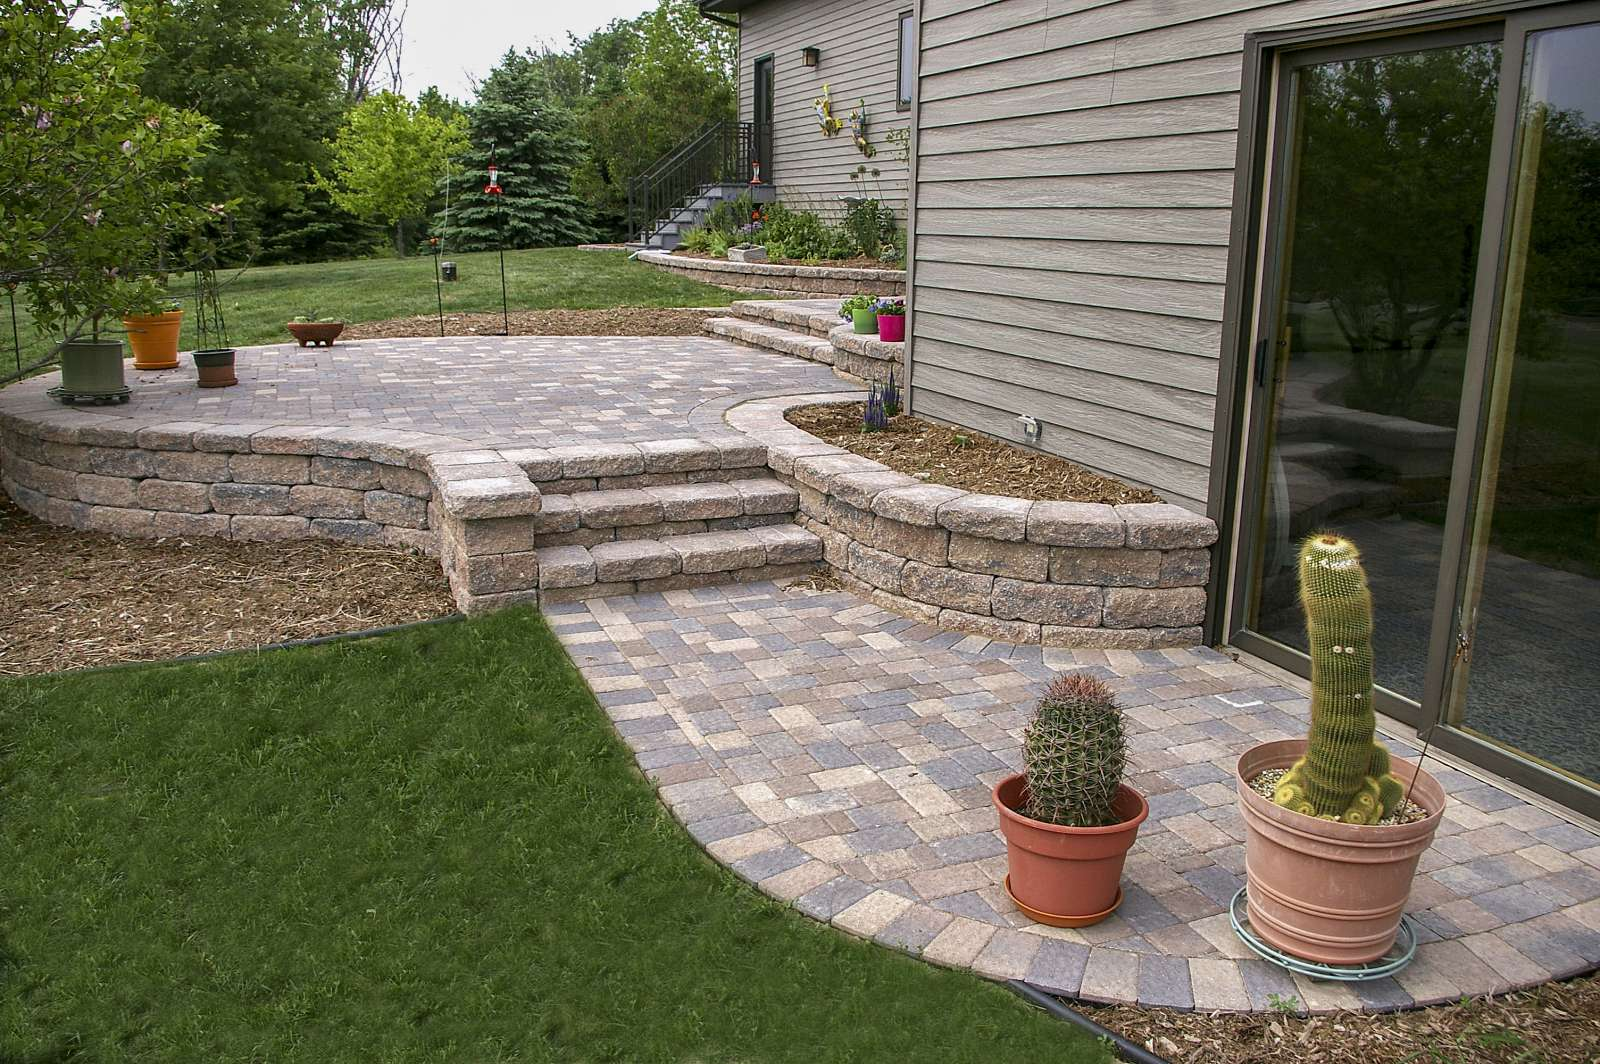 Landscaping Design Of Patios Walkways And Paths In